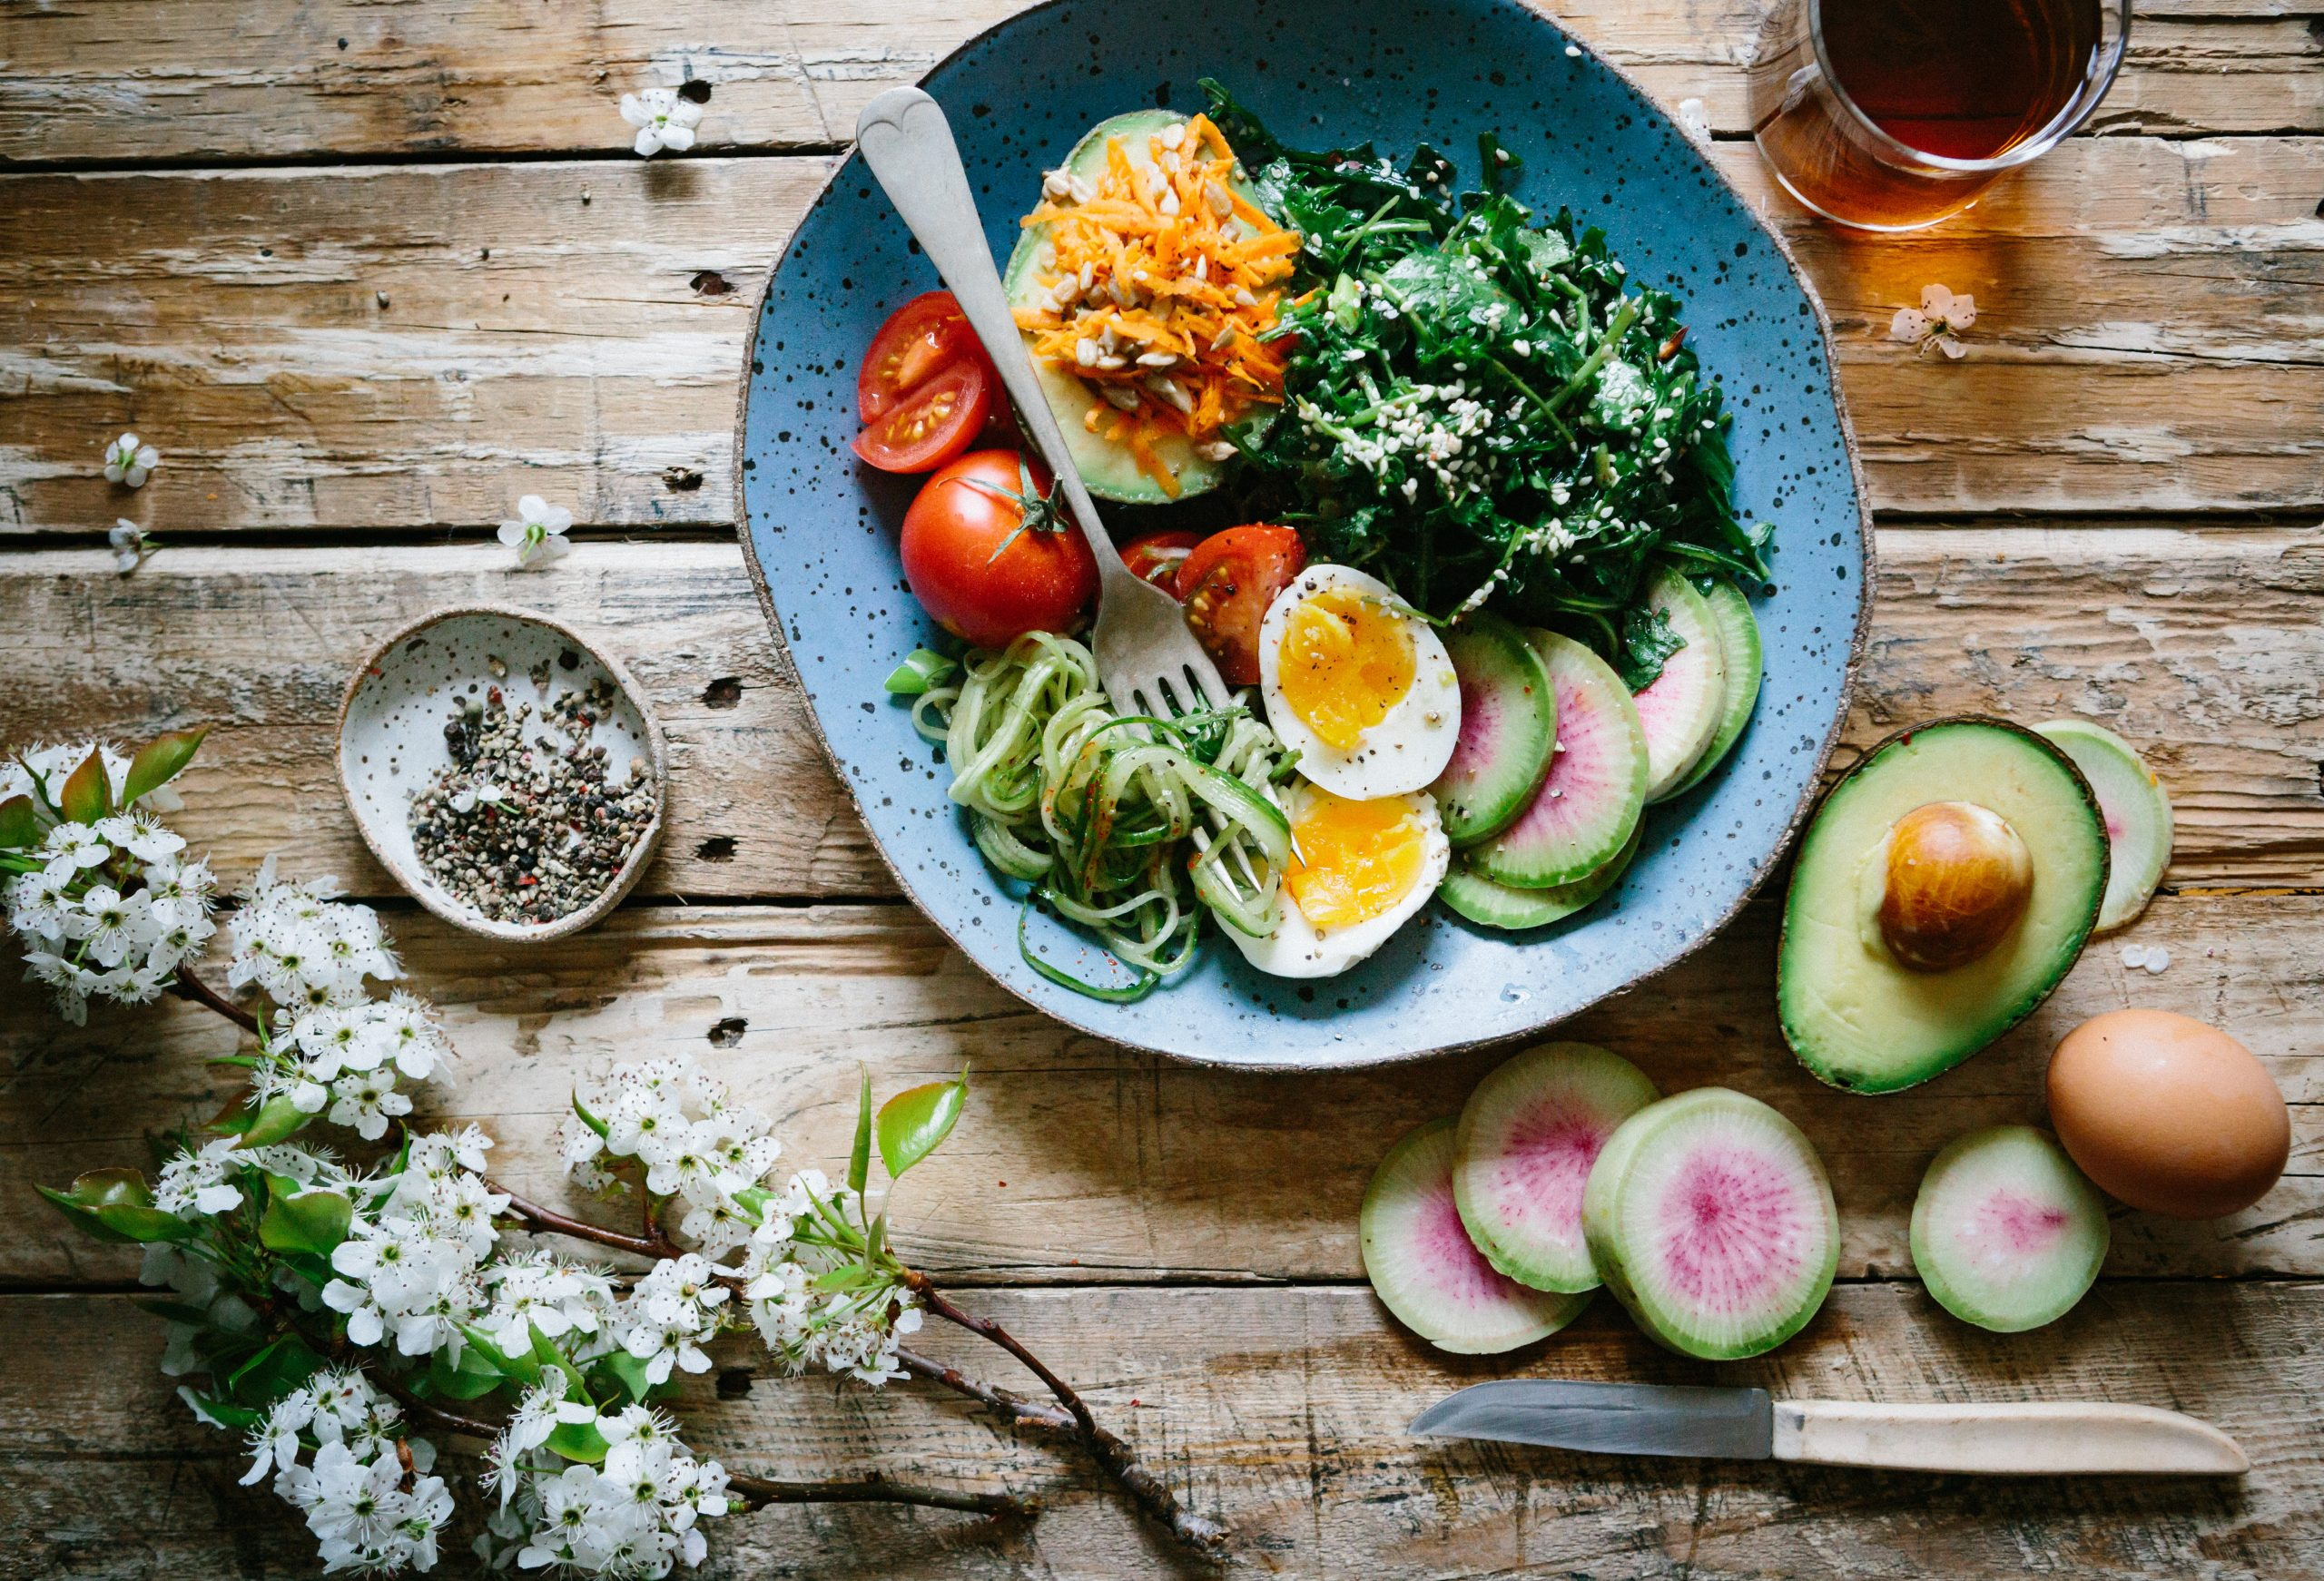 Low-Carbohydrate VS Low-Fat Diets For Type 2 Diabetes